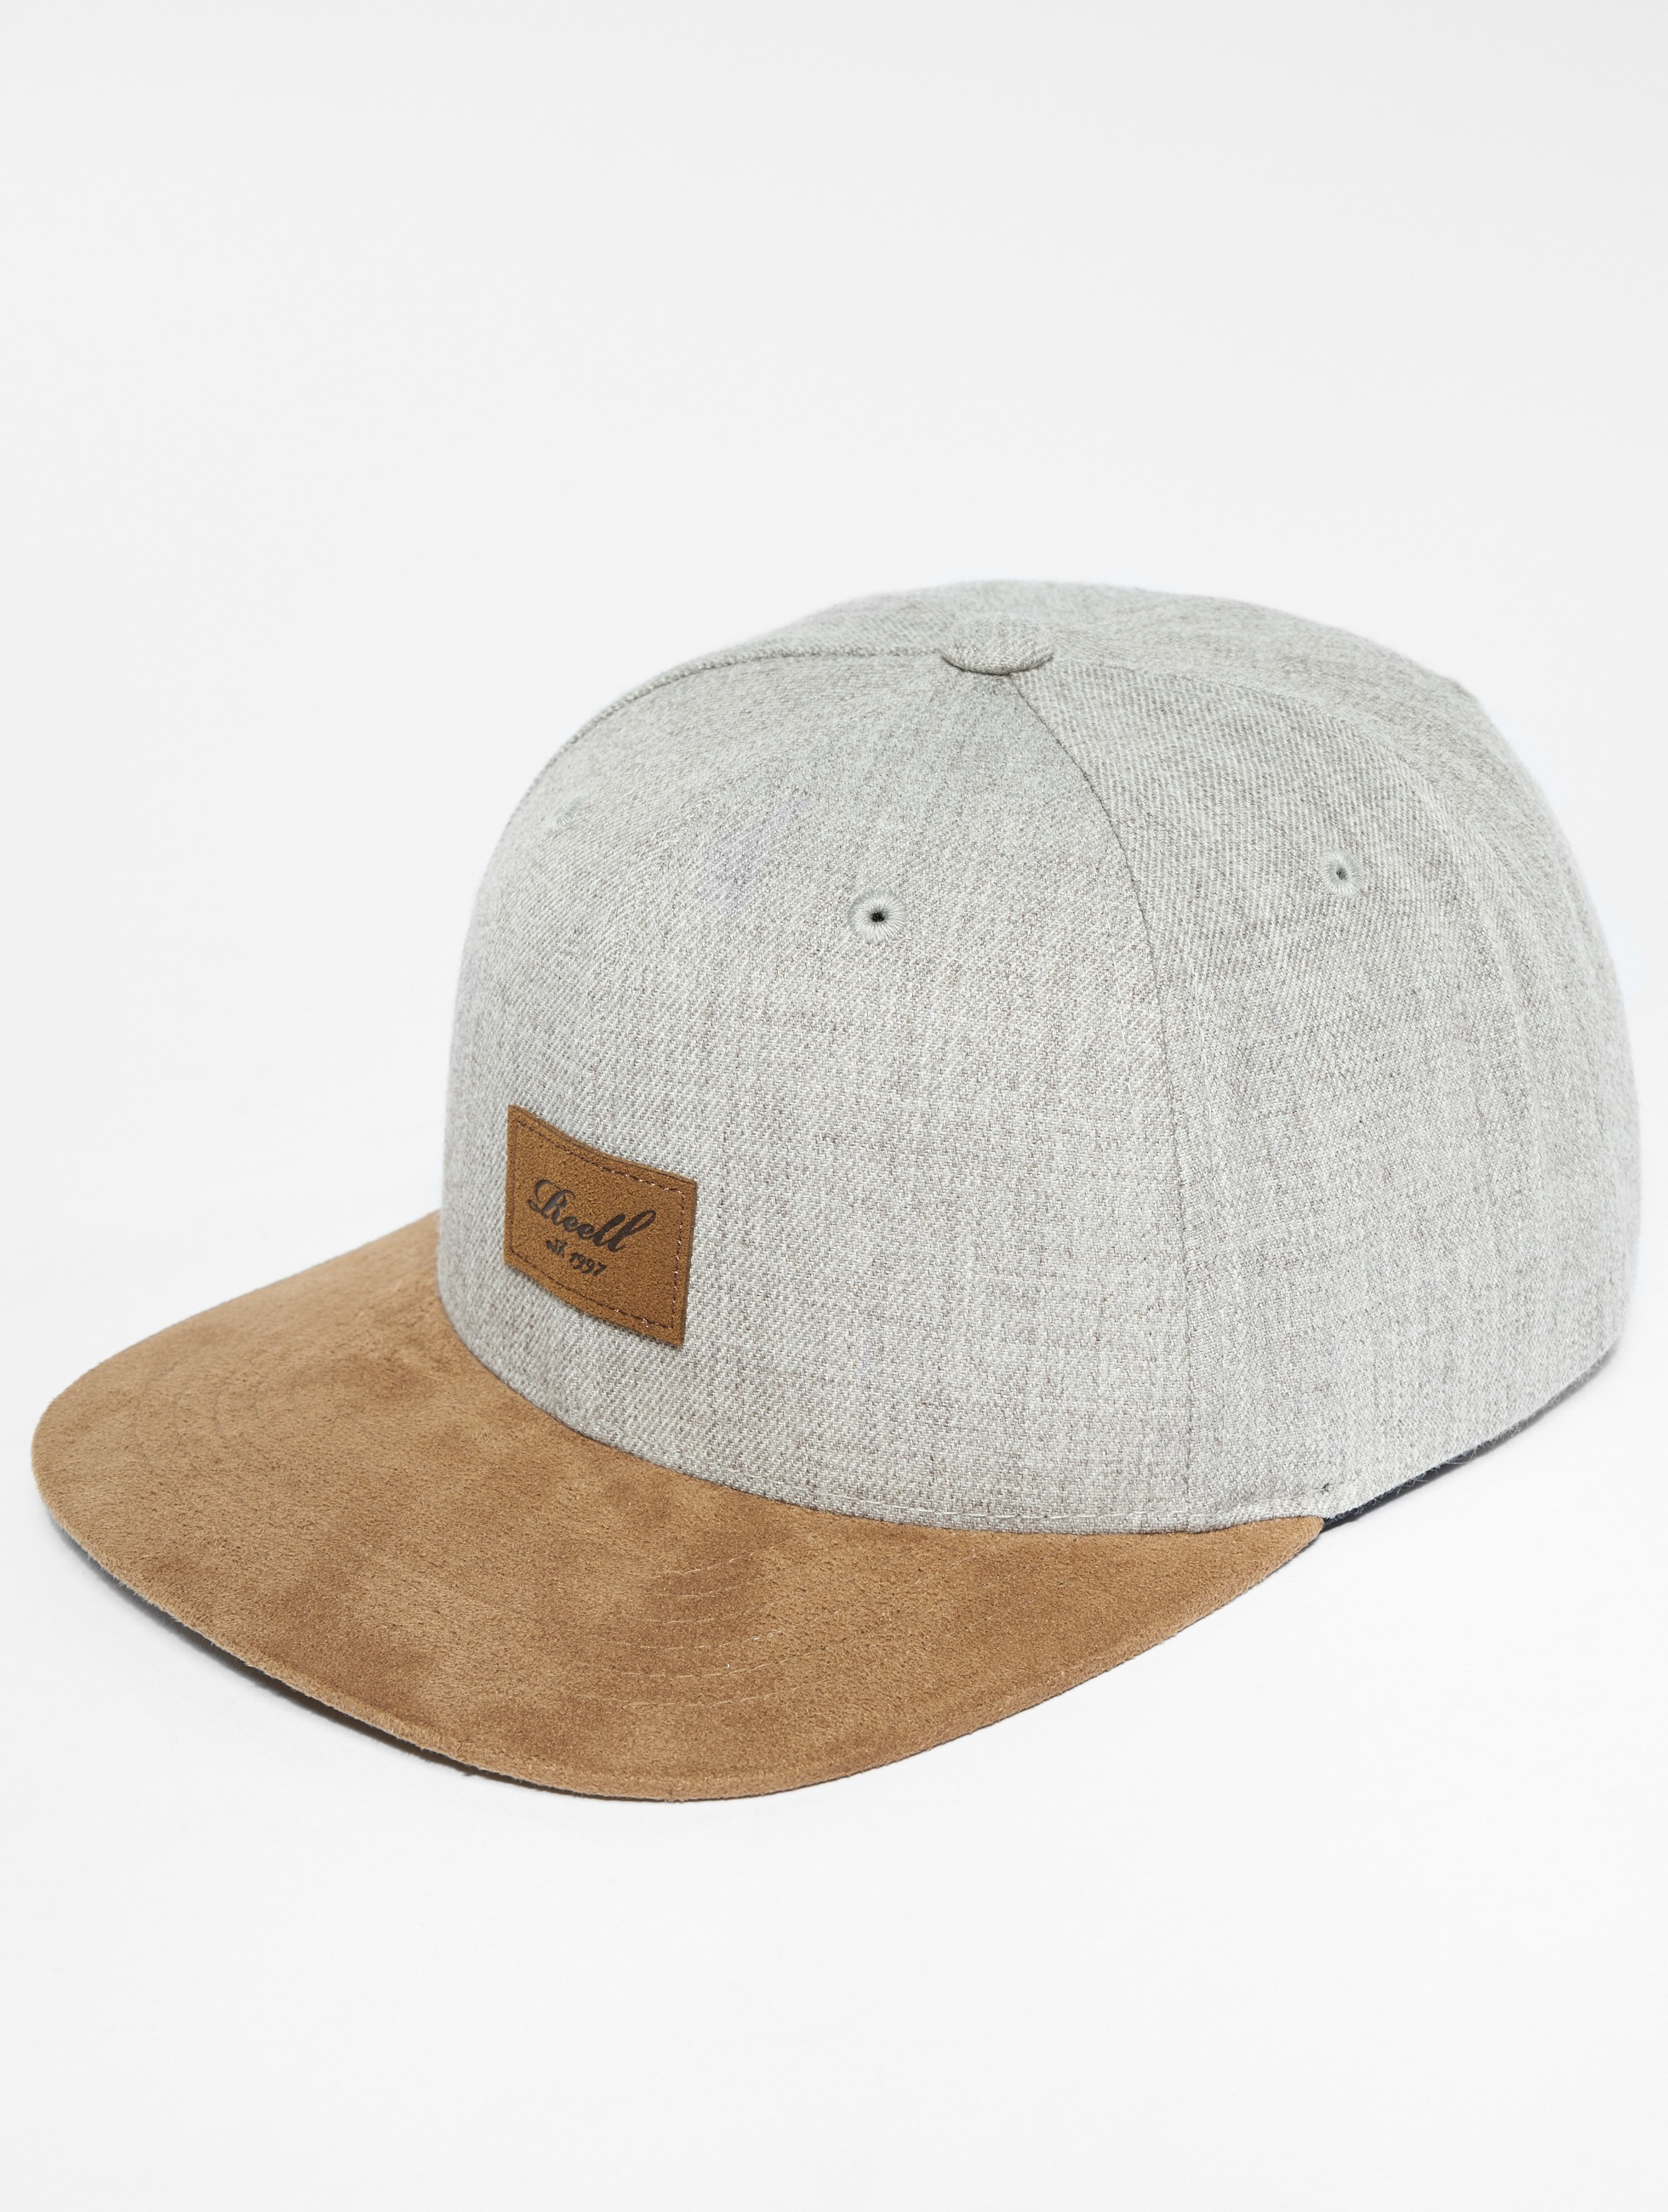 Reell Jeans | Suede gris Homme,Femme Casquette Snapback & Strapback